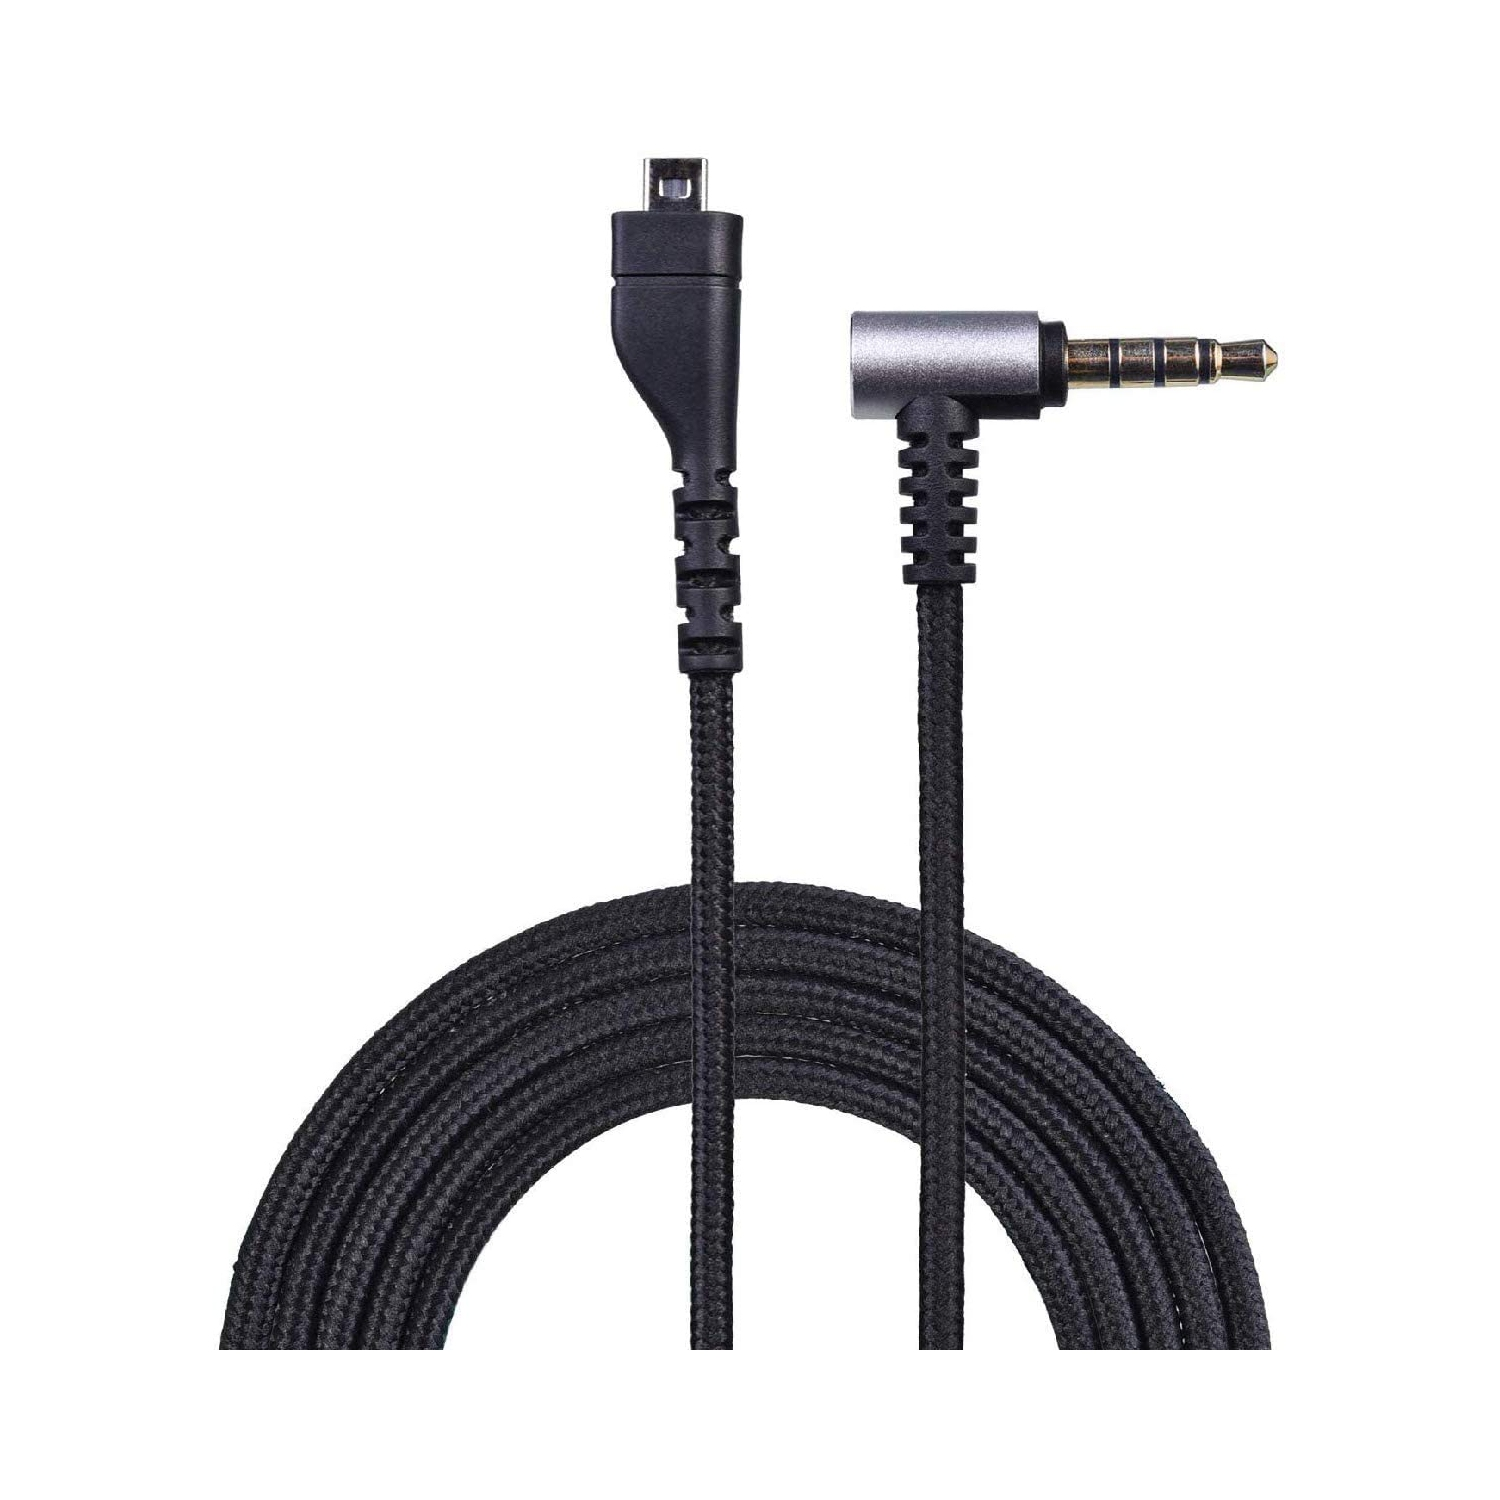 Arctis 7 Cable Replacement Arctis 9x Audio Cable Compatible For Steelseries Arctis 9x Arctis 7 Arctis Pro Best Buy Canada